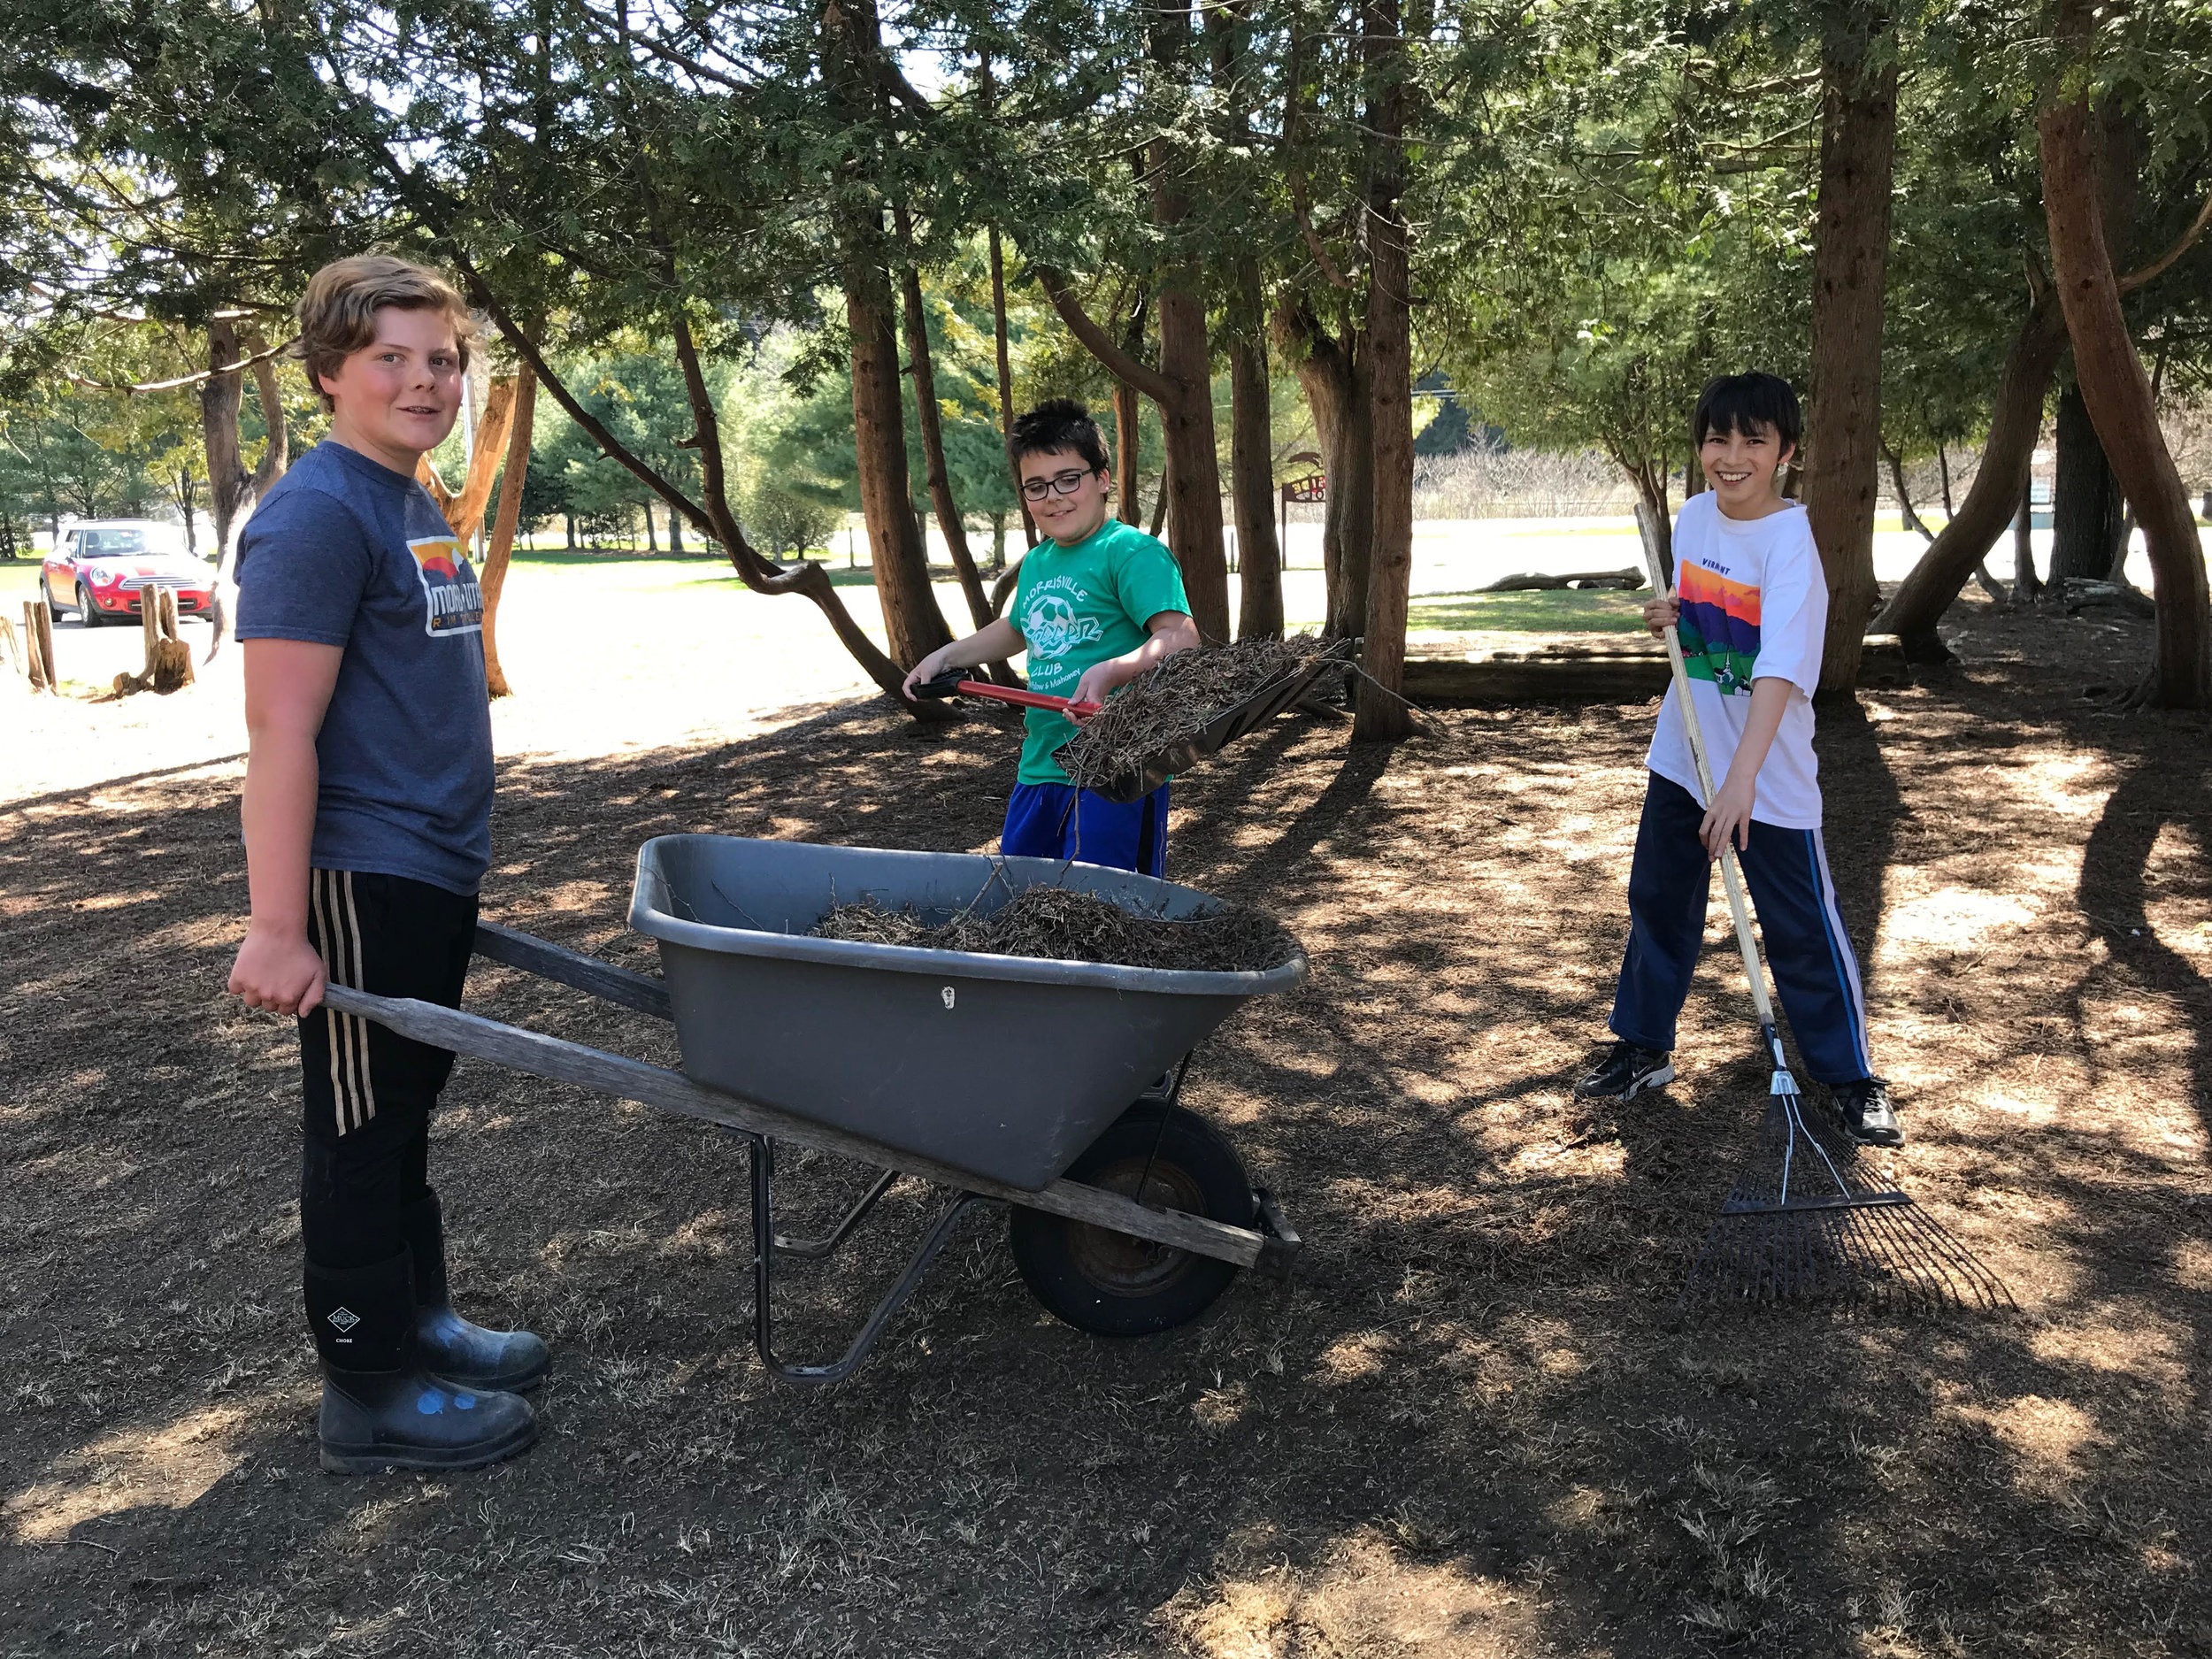 6th graders Nick, Harper, and Koji helped re-establish the grass in the cedar circle by raking out lots of sand and cedar needles last week. Let's cross our fingers that the space will be green again by graduation!